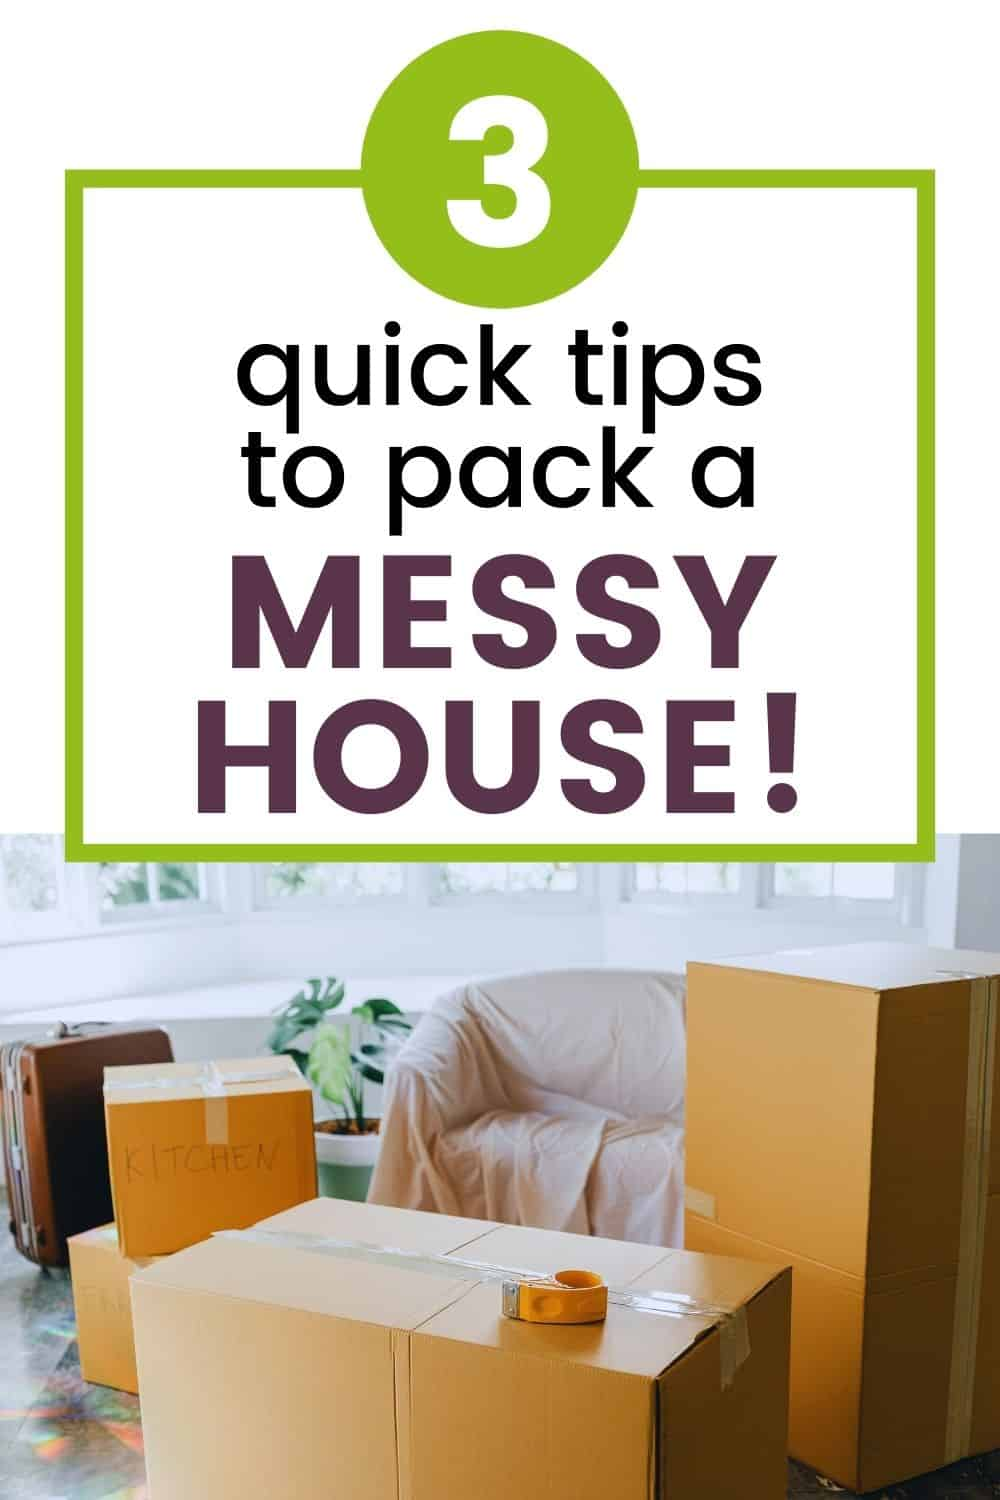 quick tips to pack a messy house